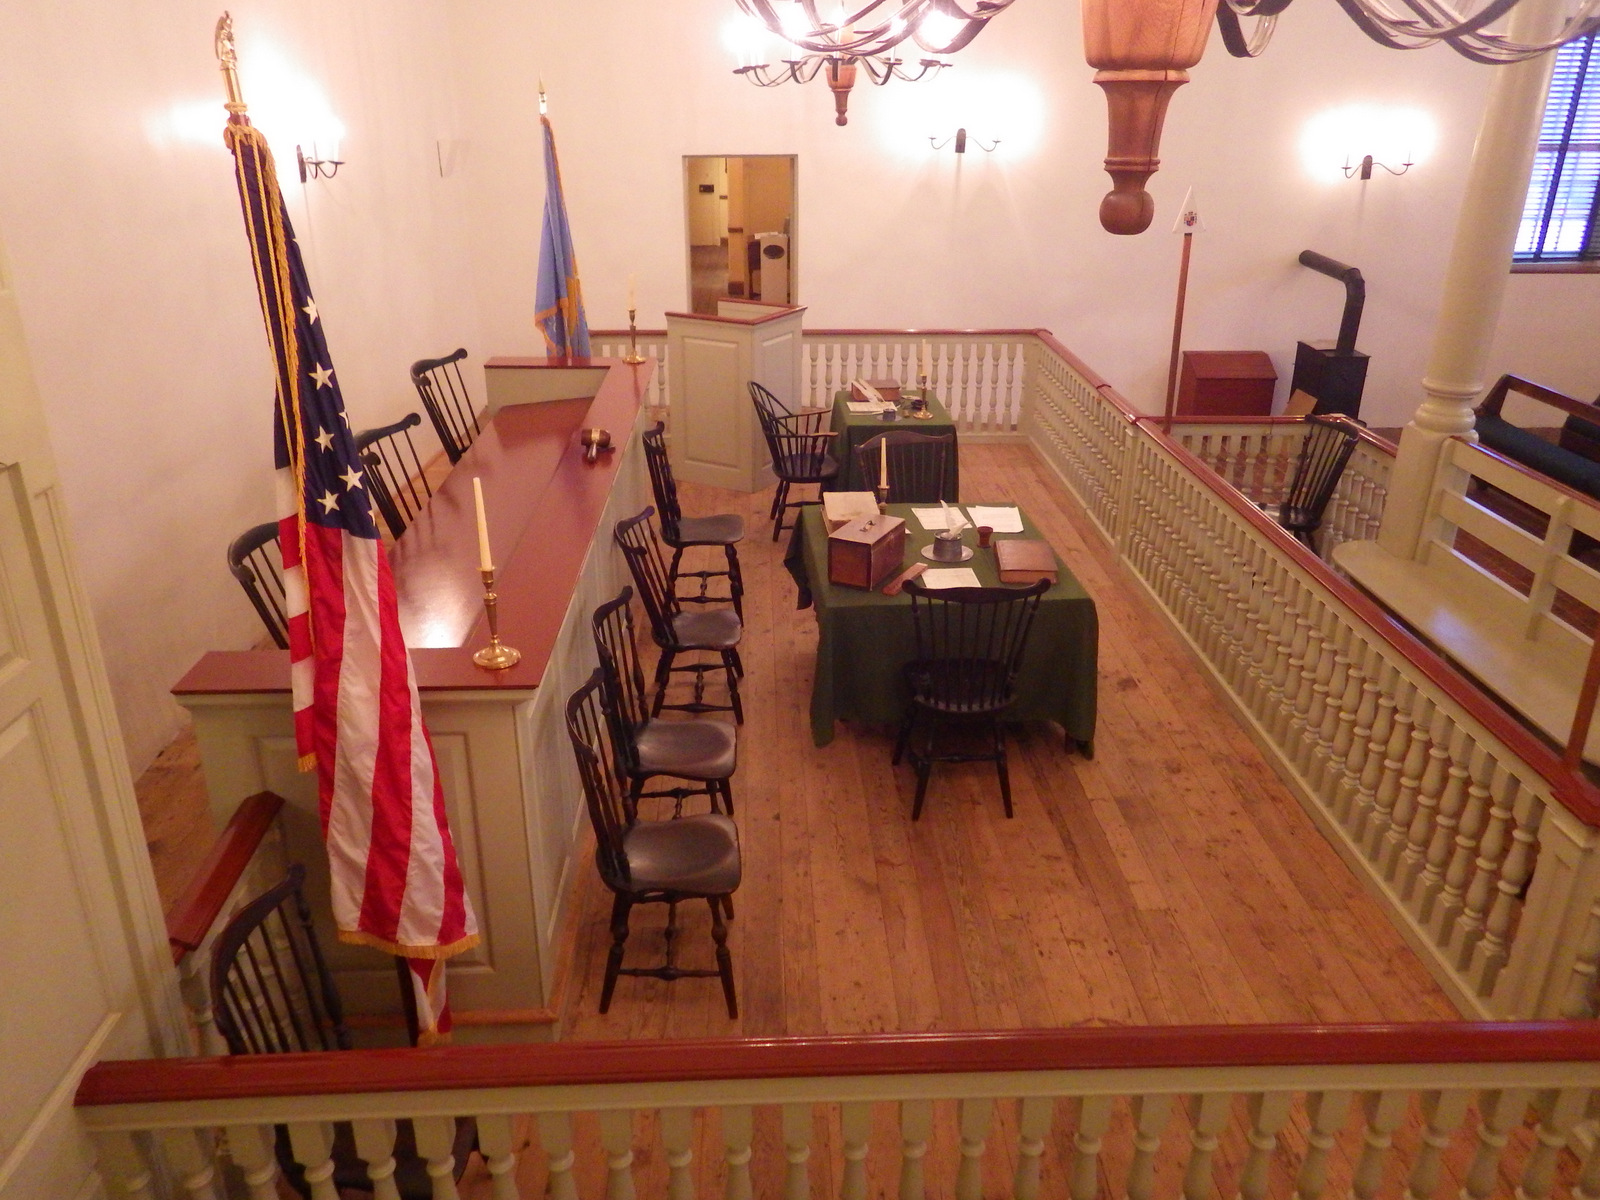 View of English-style courtroom inside Old New Castle Courthouse